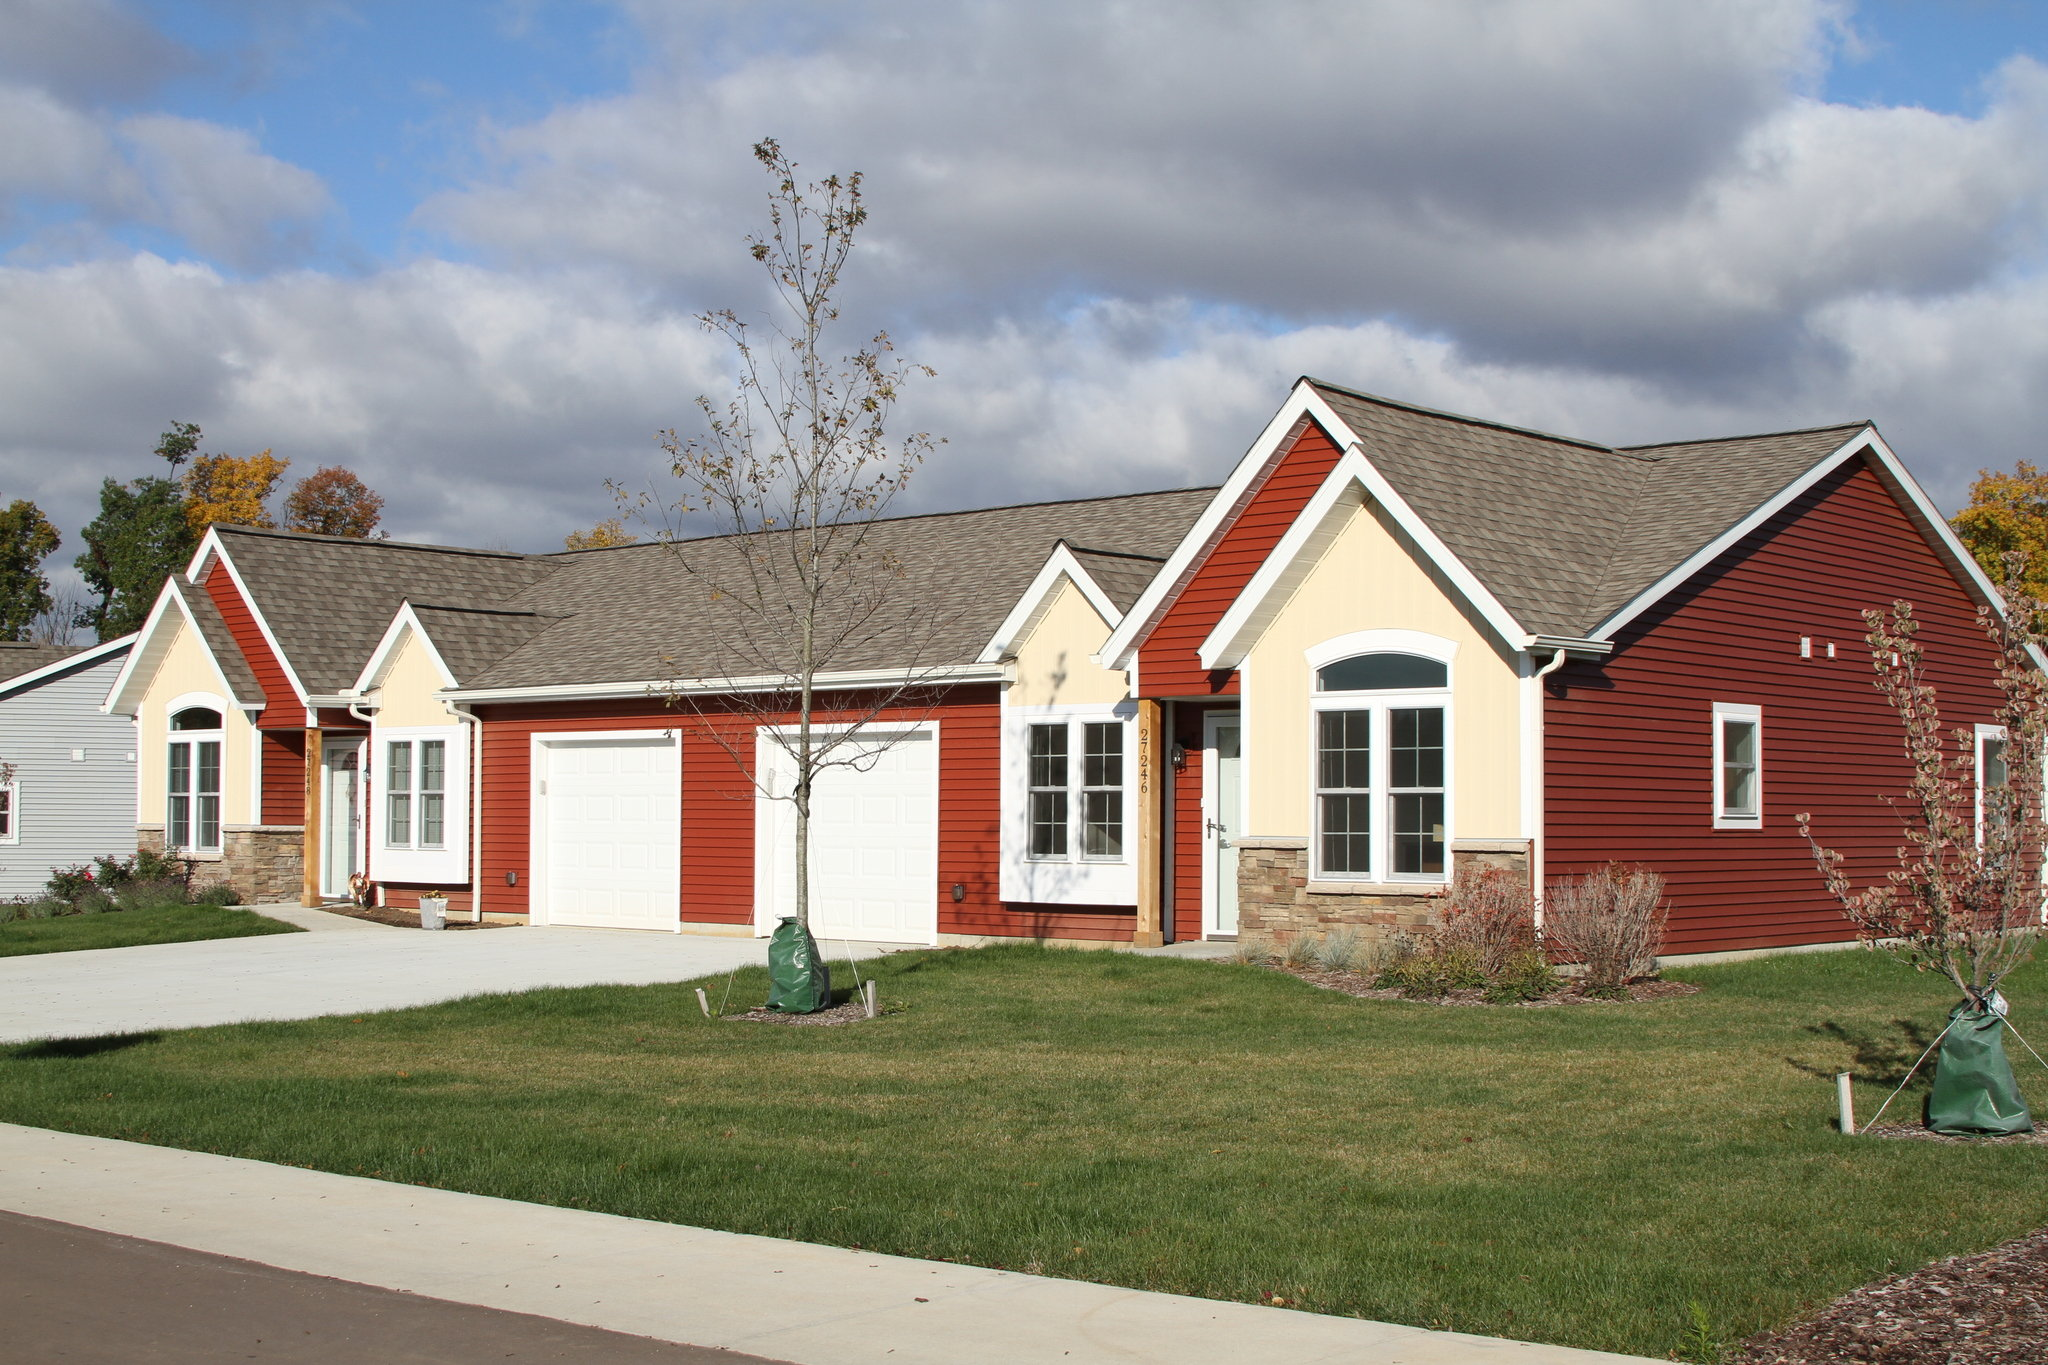 Pokagon Band to file land-into-trust application at housing site